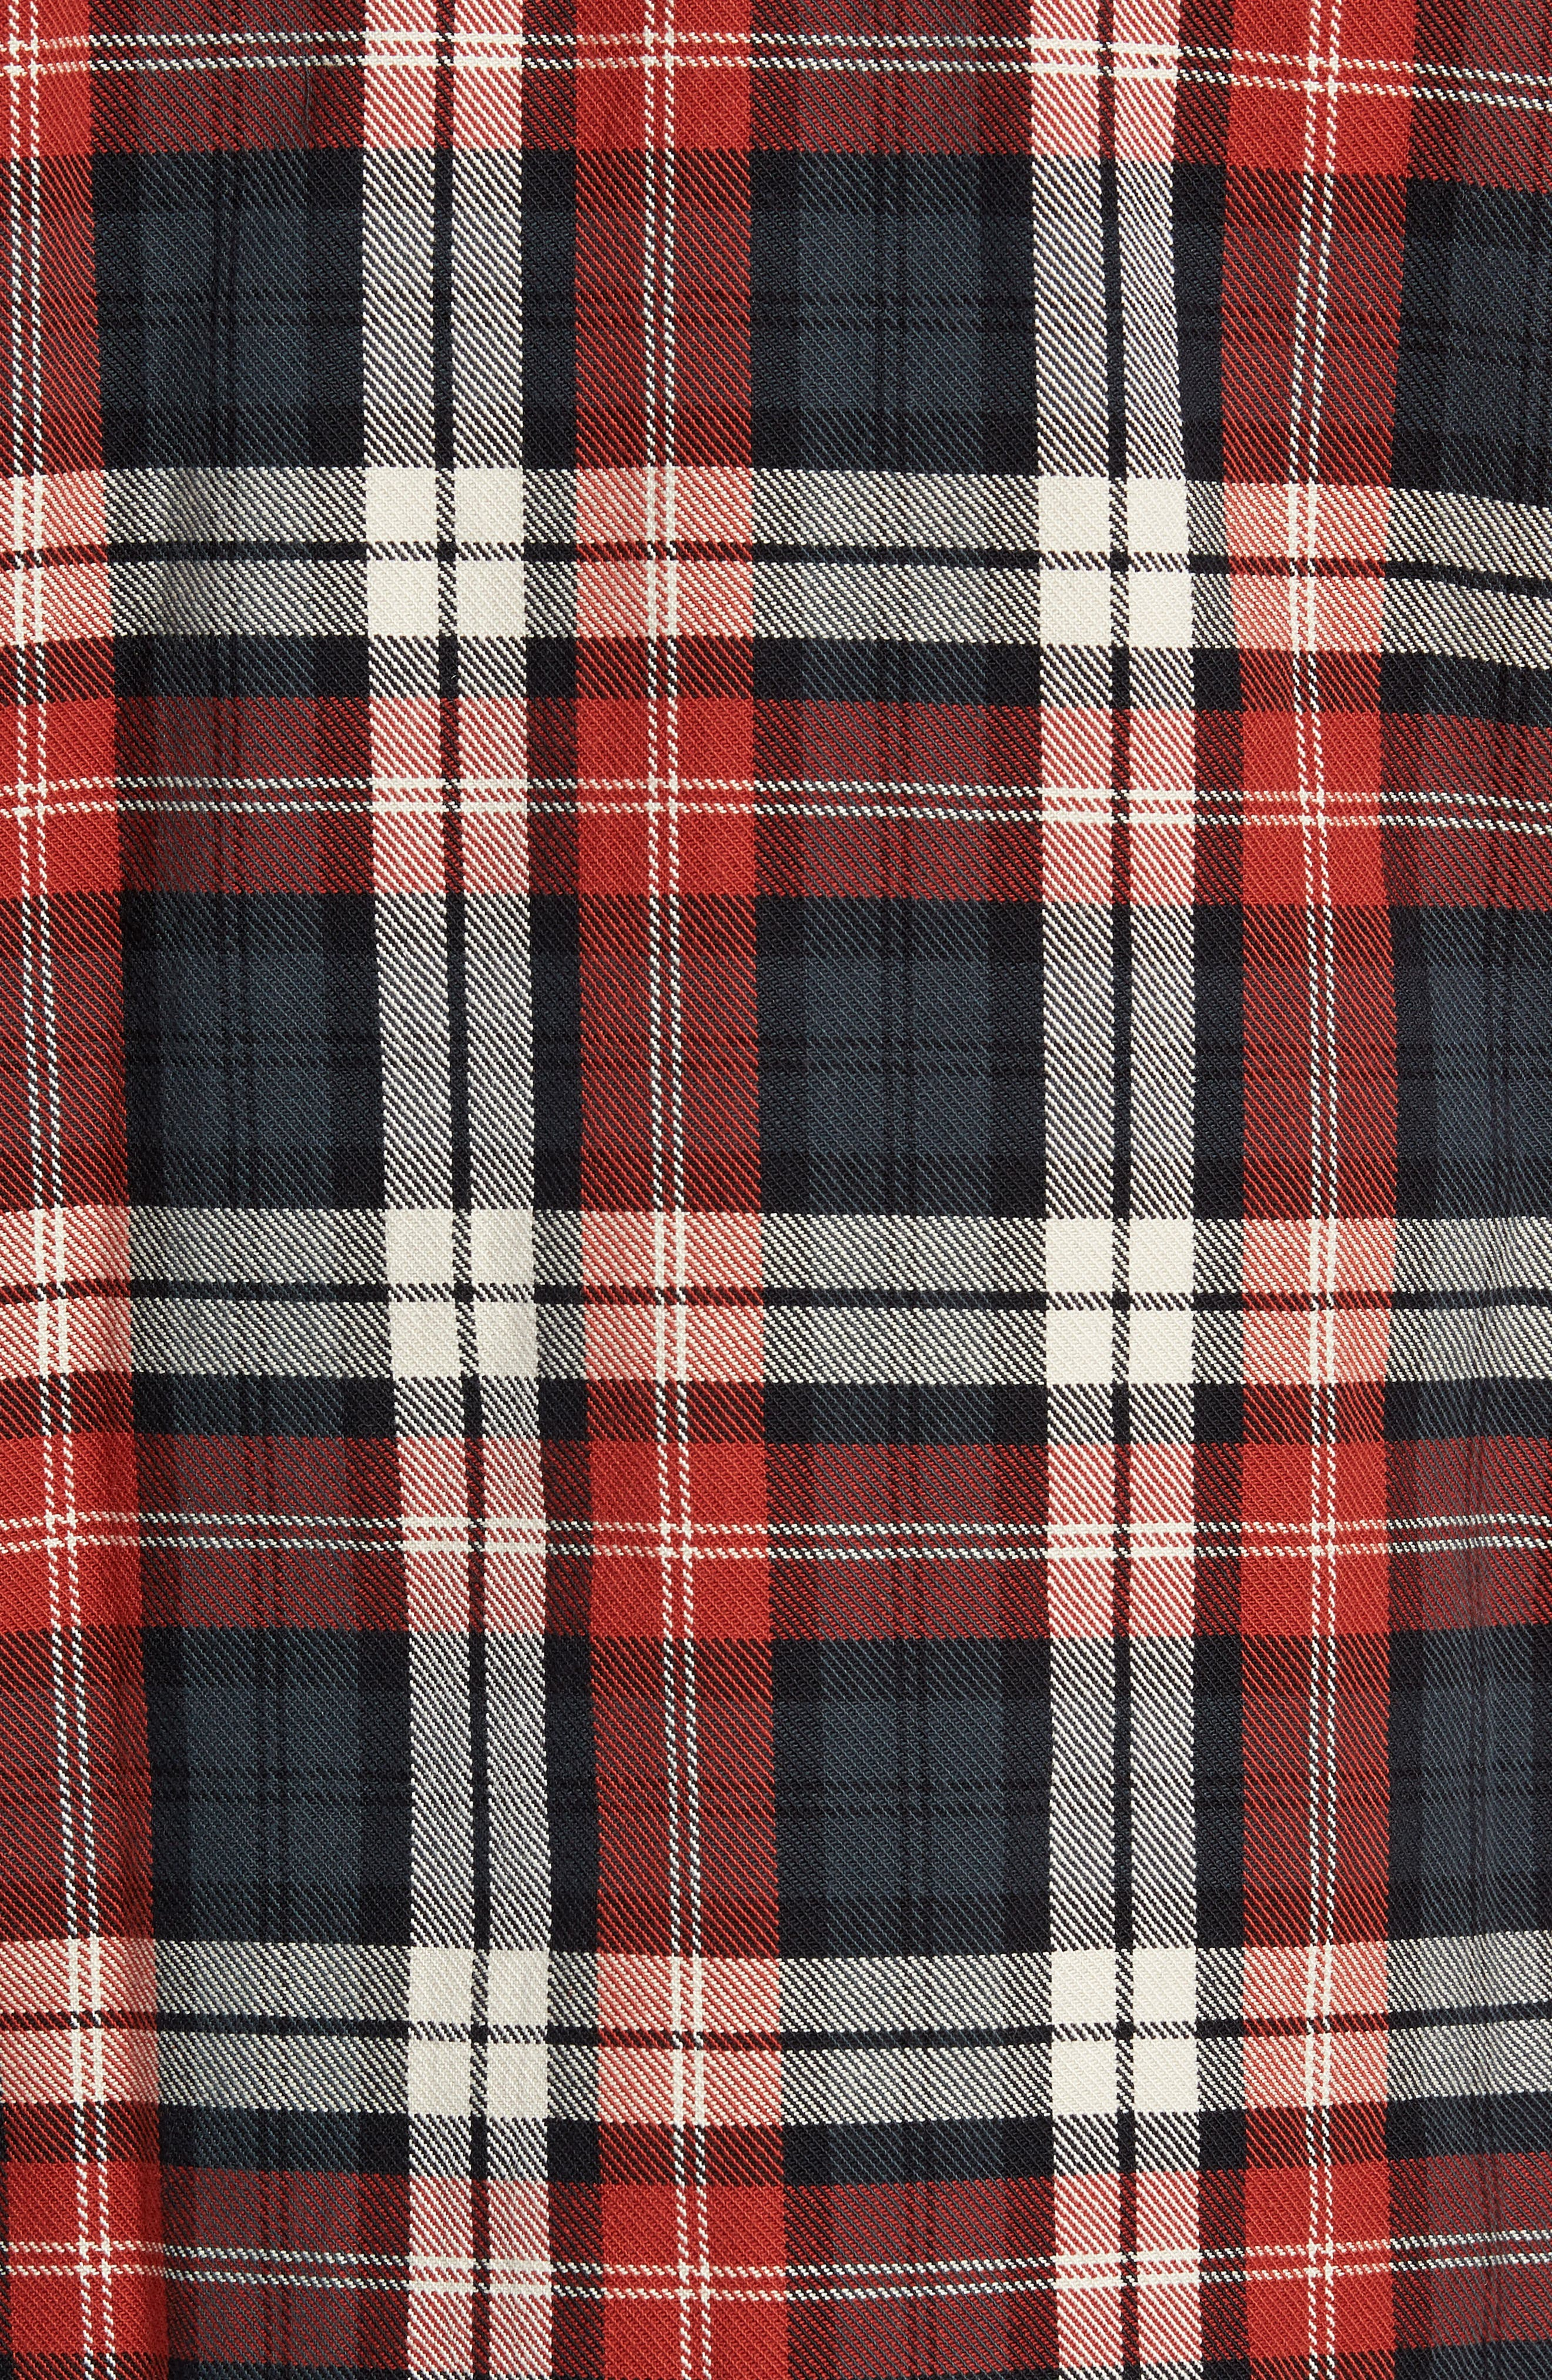 Puffy Classic Fit Work Shirt,                             Alternate thumbnail 6, color,                             RED PLAID